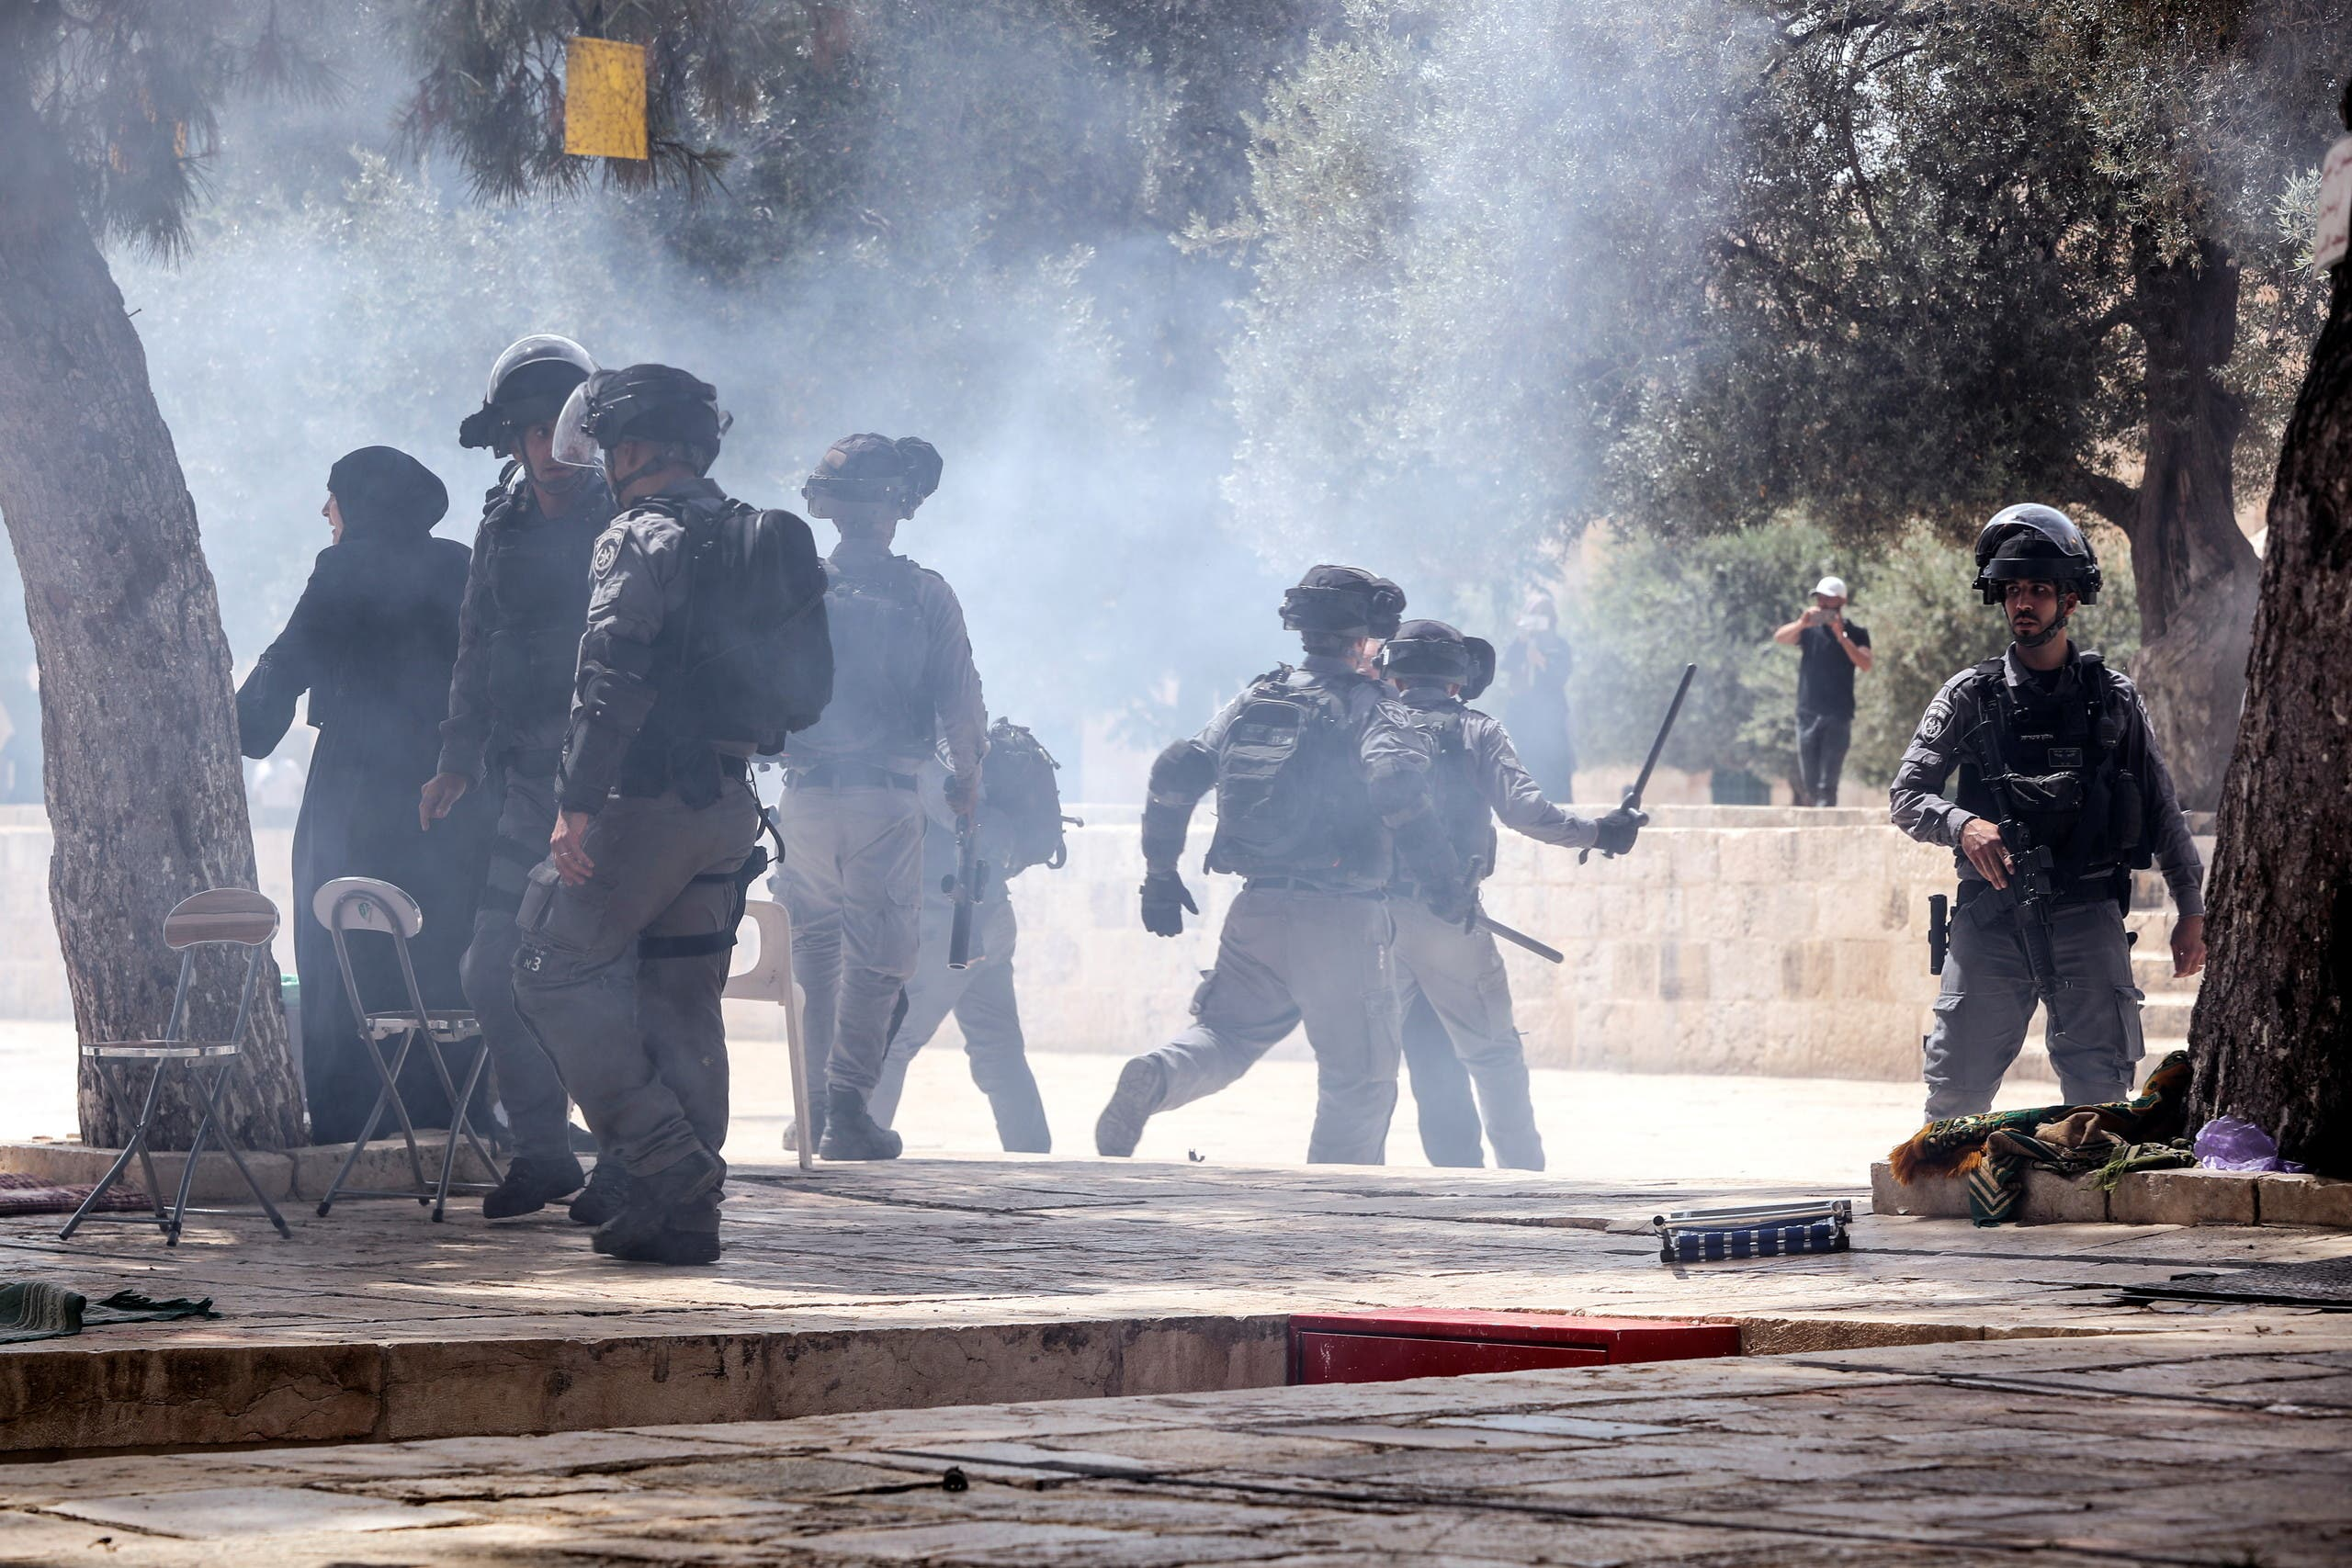 Israeli security forces clash with Palestinians at the compound that houses Al-Aqsa Mosque. (File photo: Reuters)